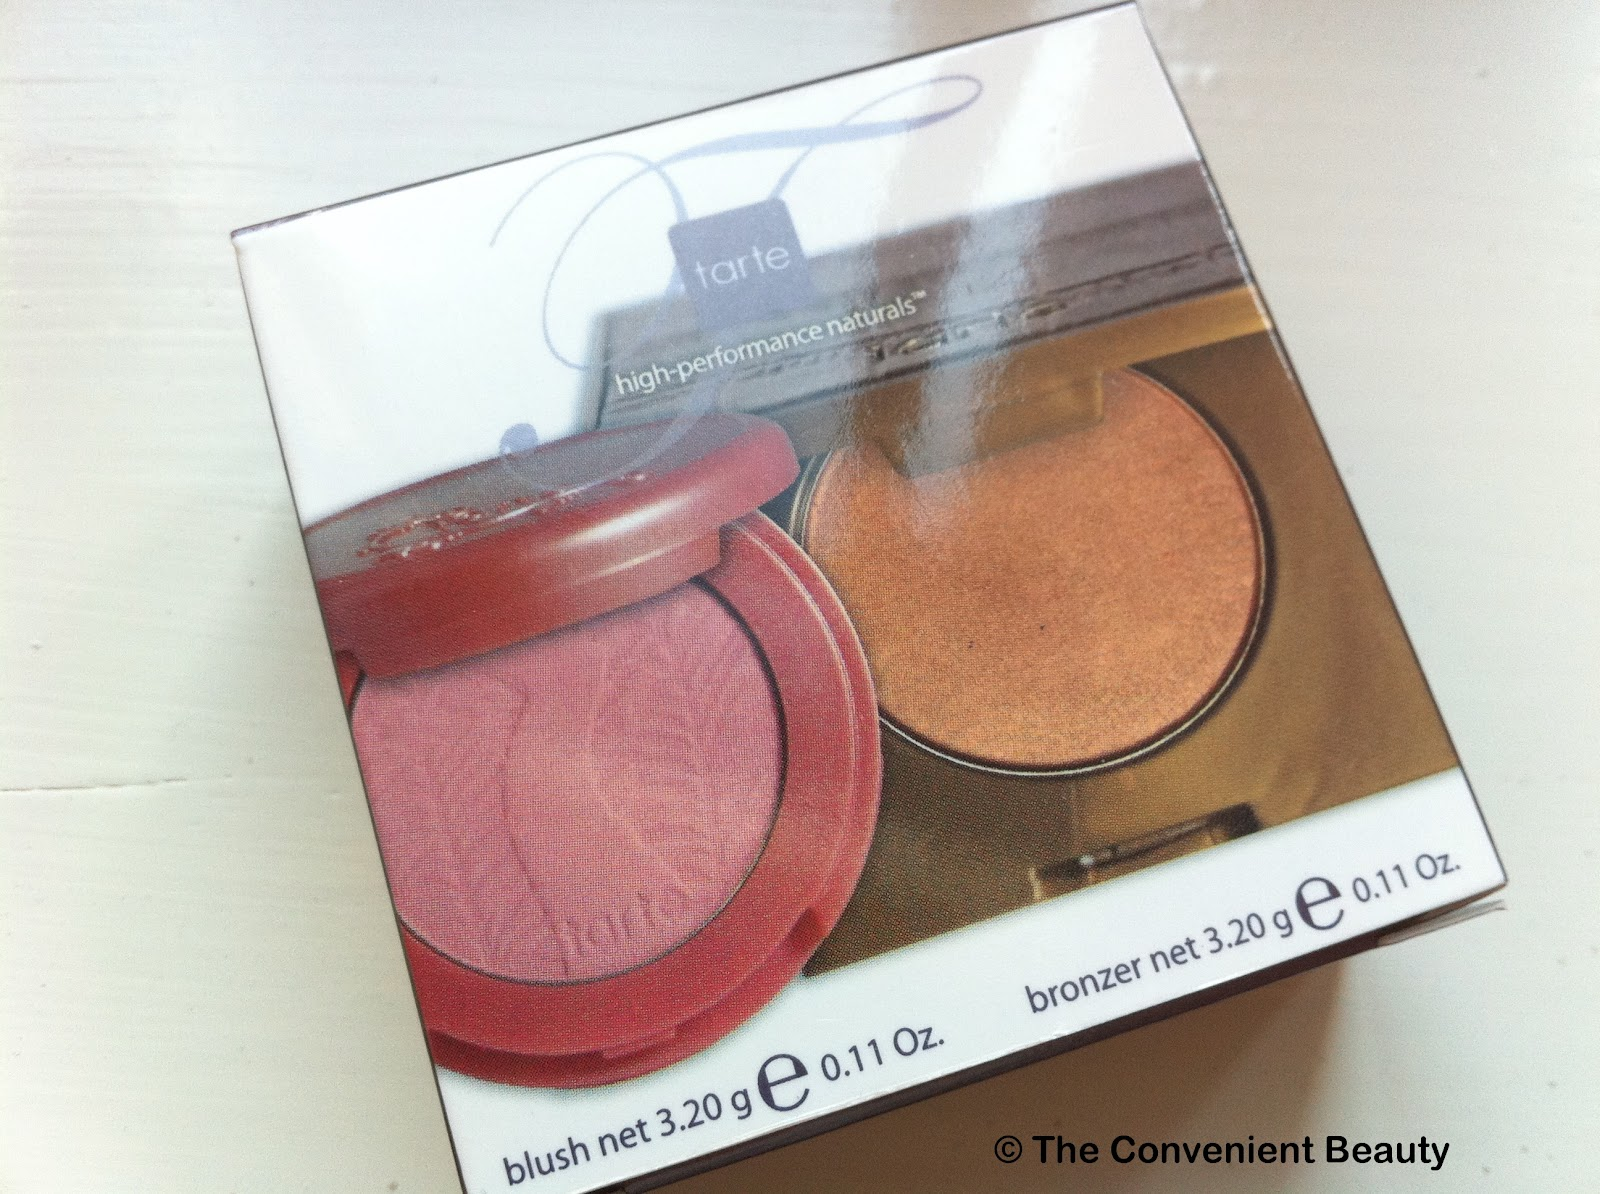 The Convenient Beauty Review Tarte On The Go Blush